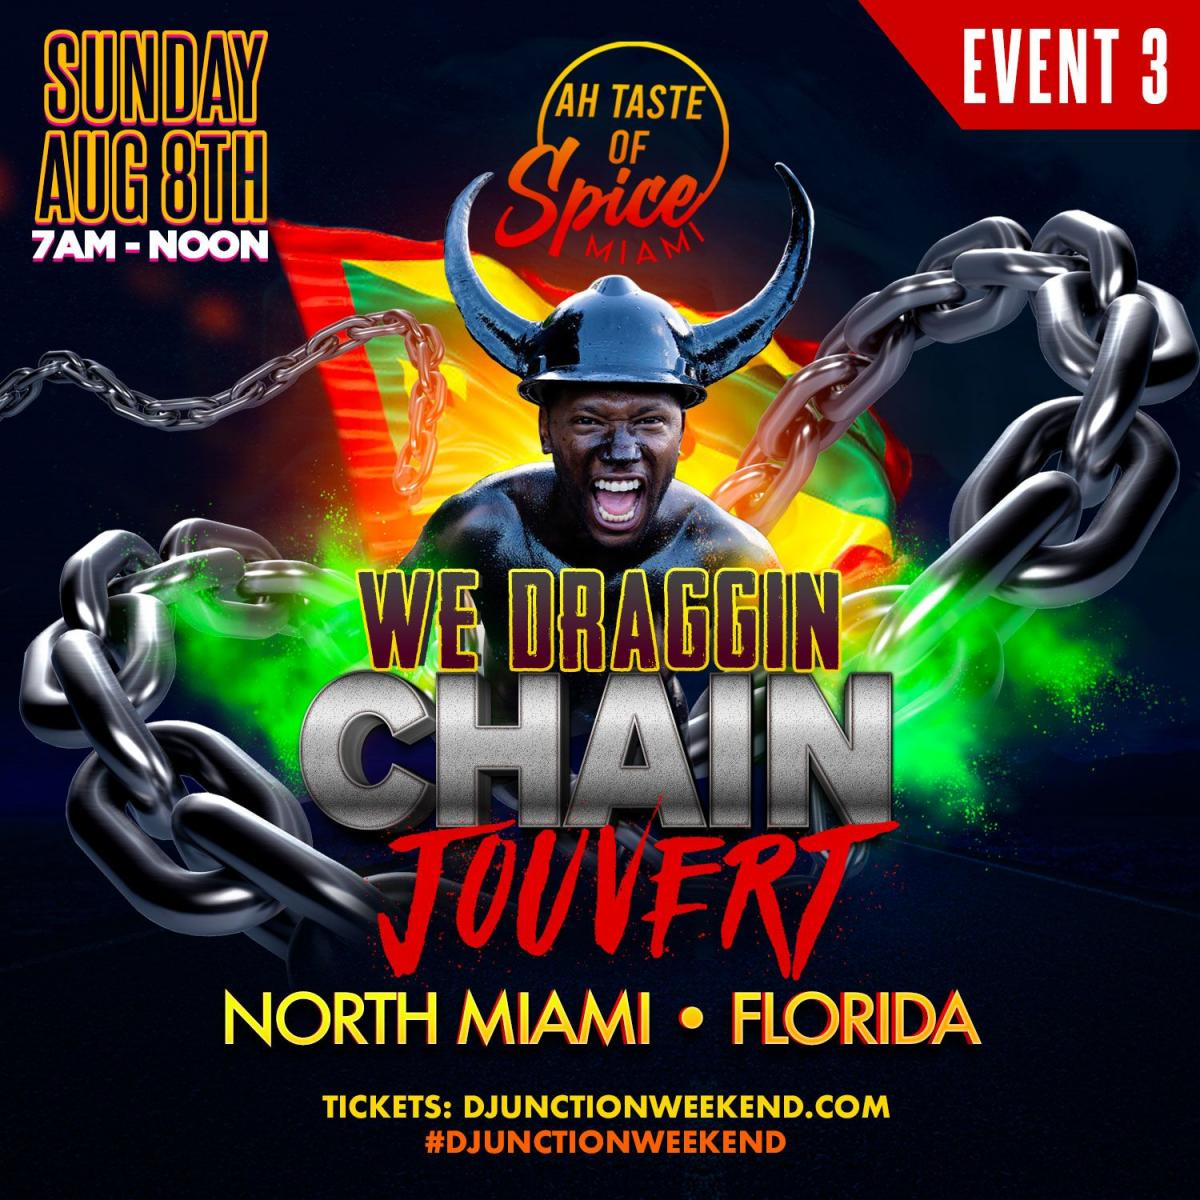 We Dragging Chain Jouvert flyer or graphic.